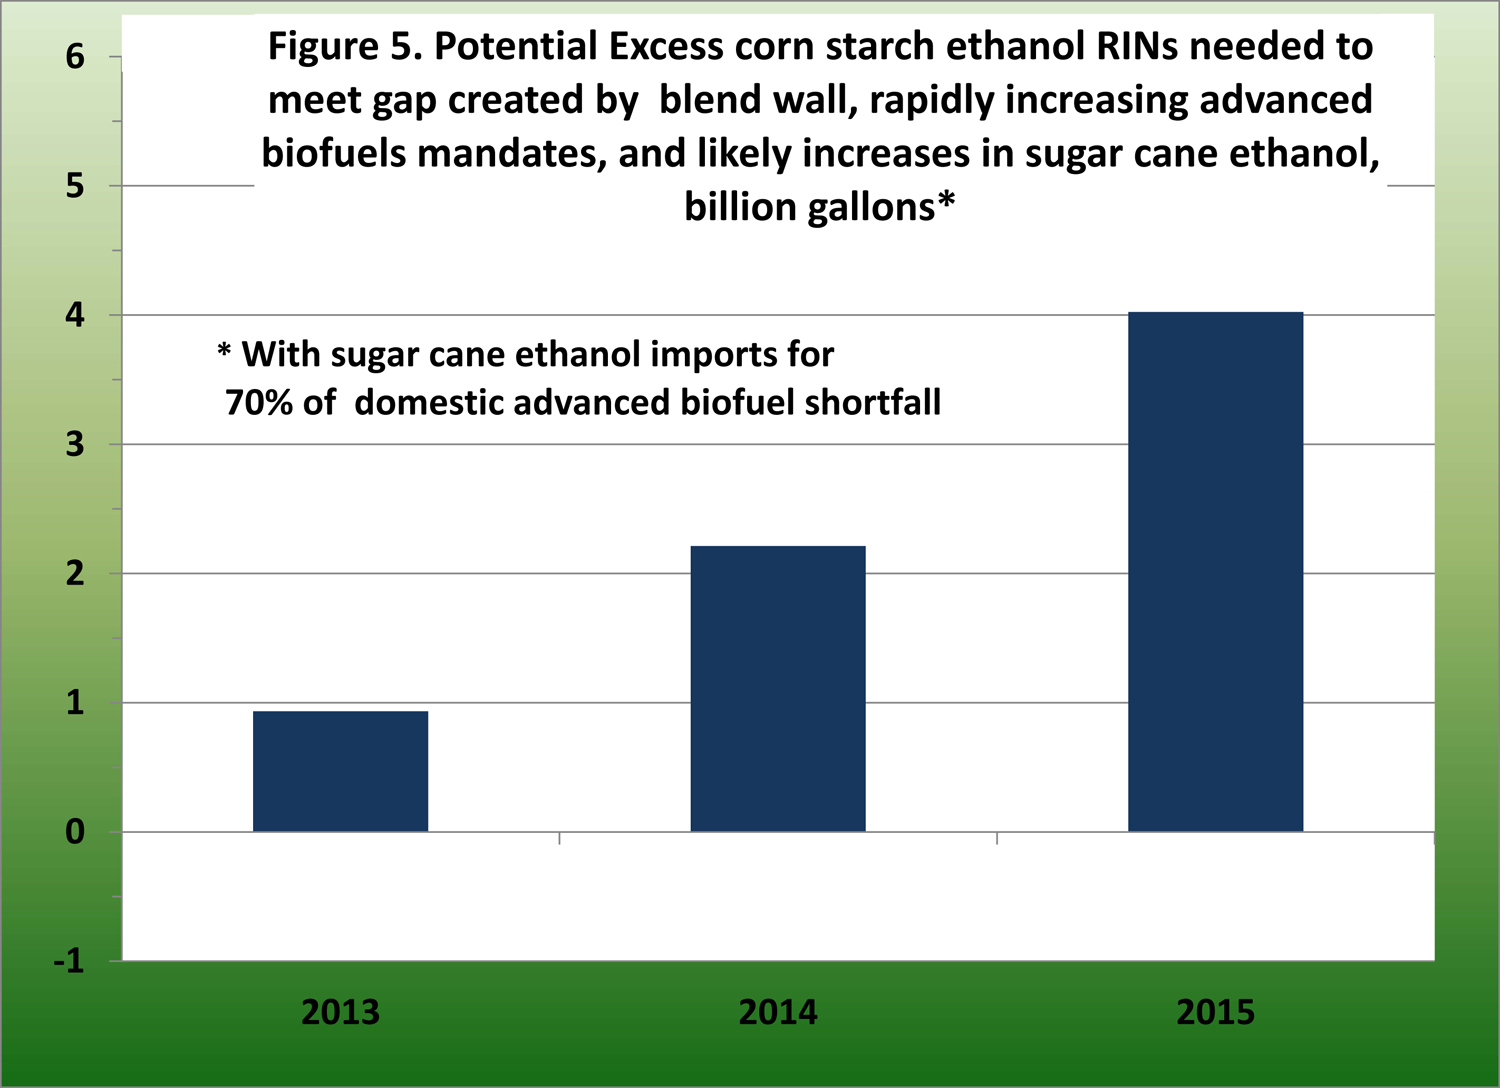 Potential excess corn startch ethanol RINs